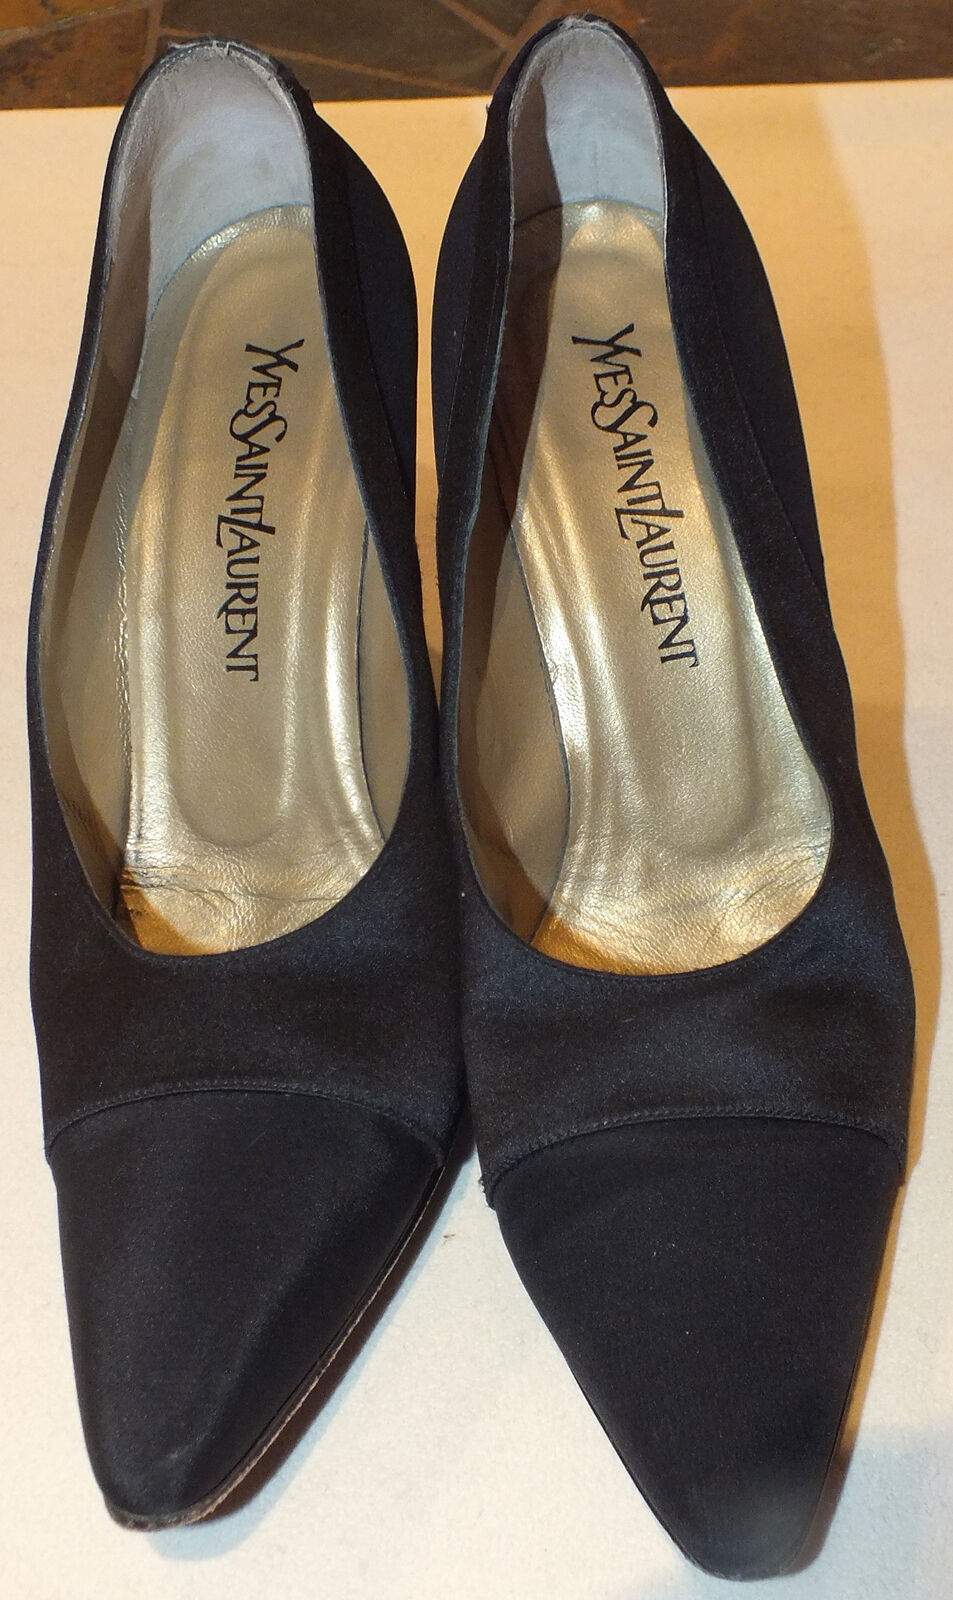 YSL Yves St. Laurent Ladies Shoes Heels Sz. 8.5 M Black Used